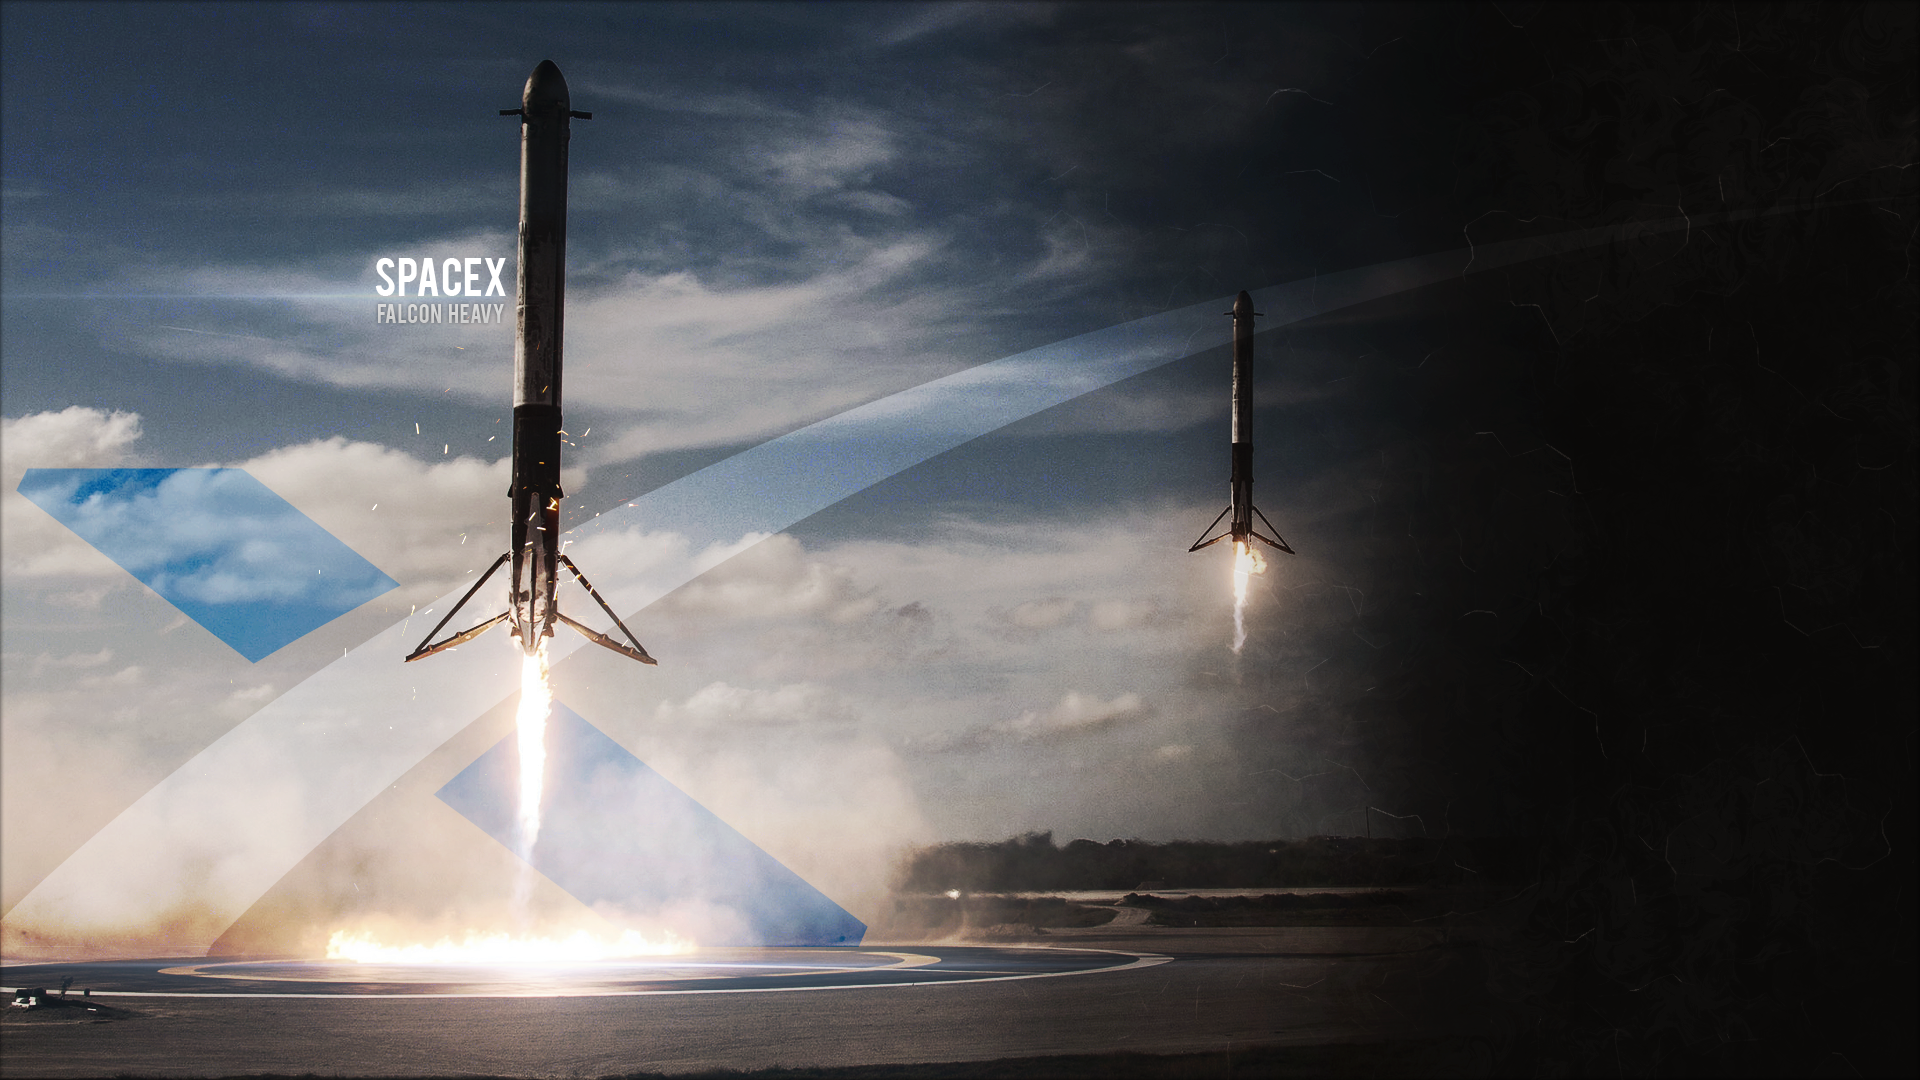 Wallpaper I Made Of The Falcon Heavy Side Boosters Landing 1920x1080